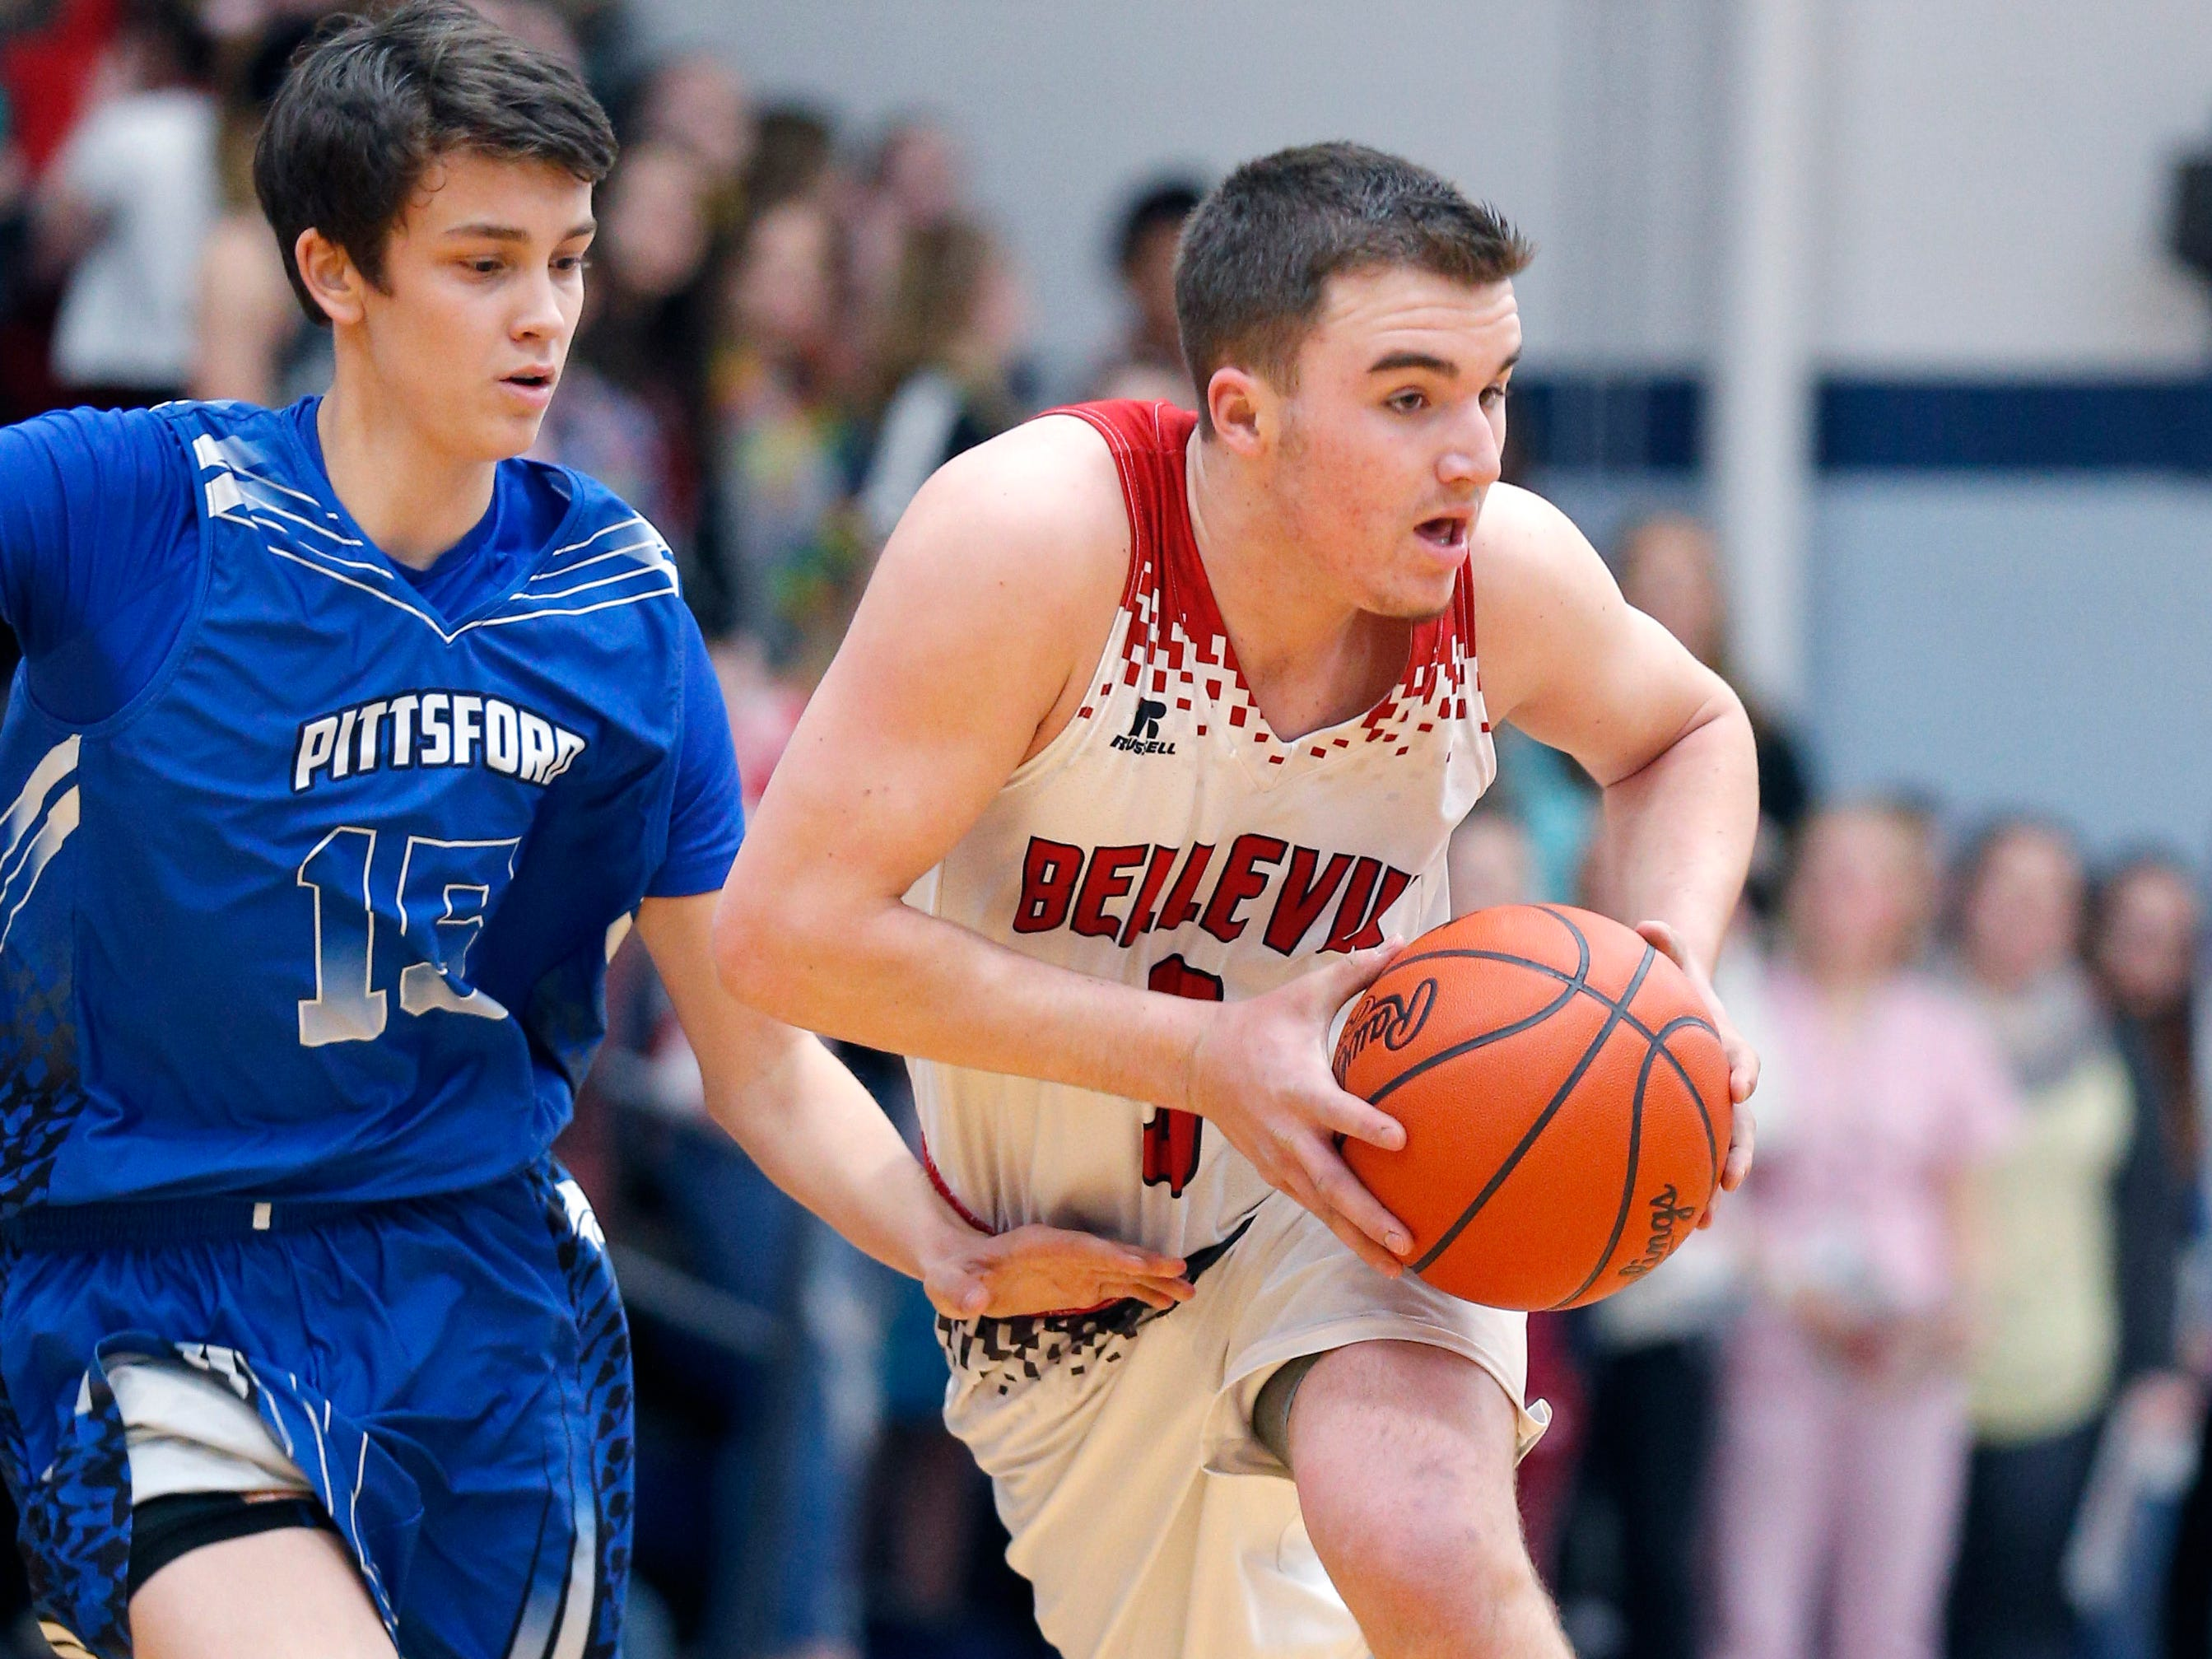 Bellevue's Gino Costello, right, drives against pressure from Pittsford's Zachary Bowers in their regional final, Thursday, March 7, 2019, in Fowler, Mich. Bellevue won 42-28.